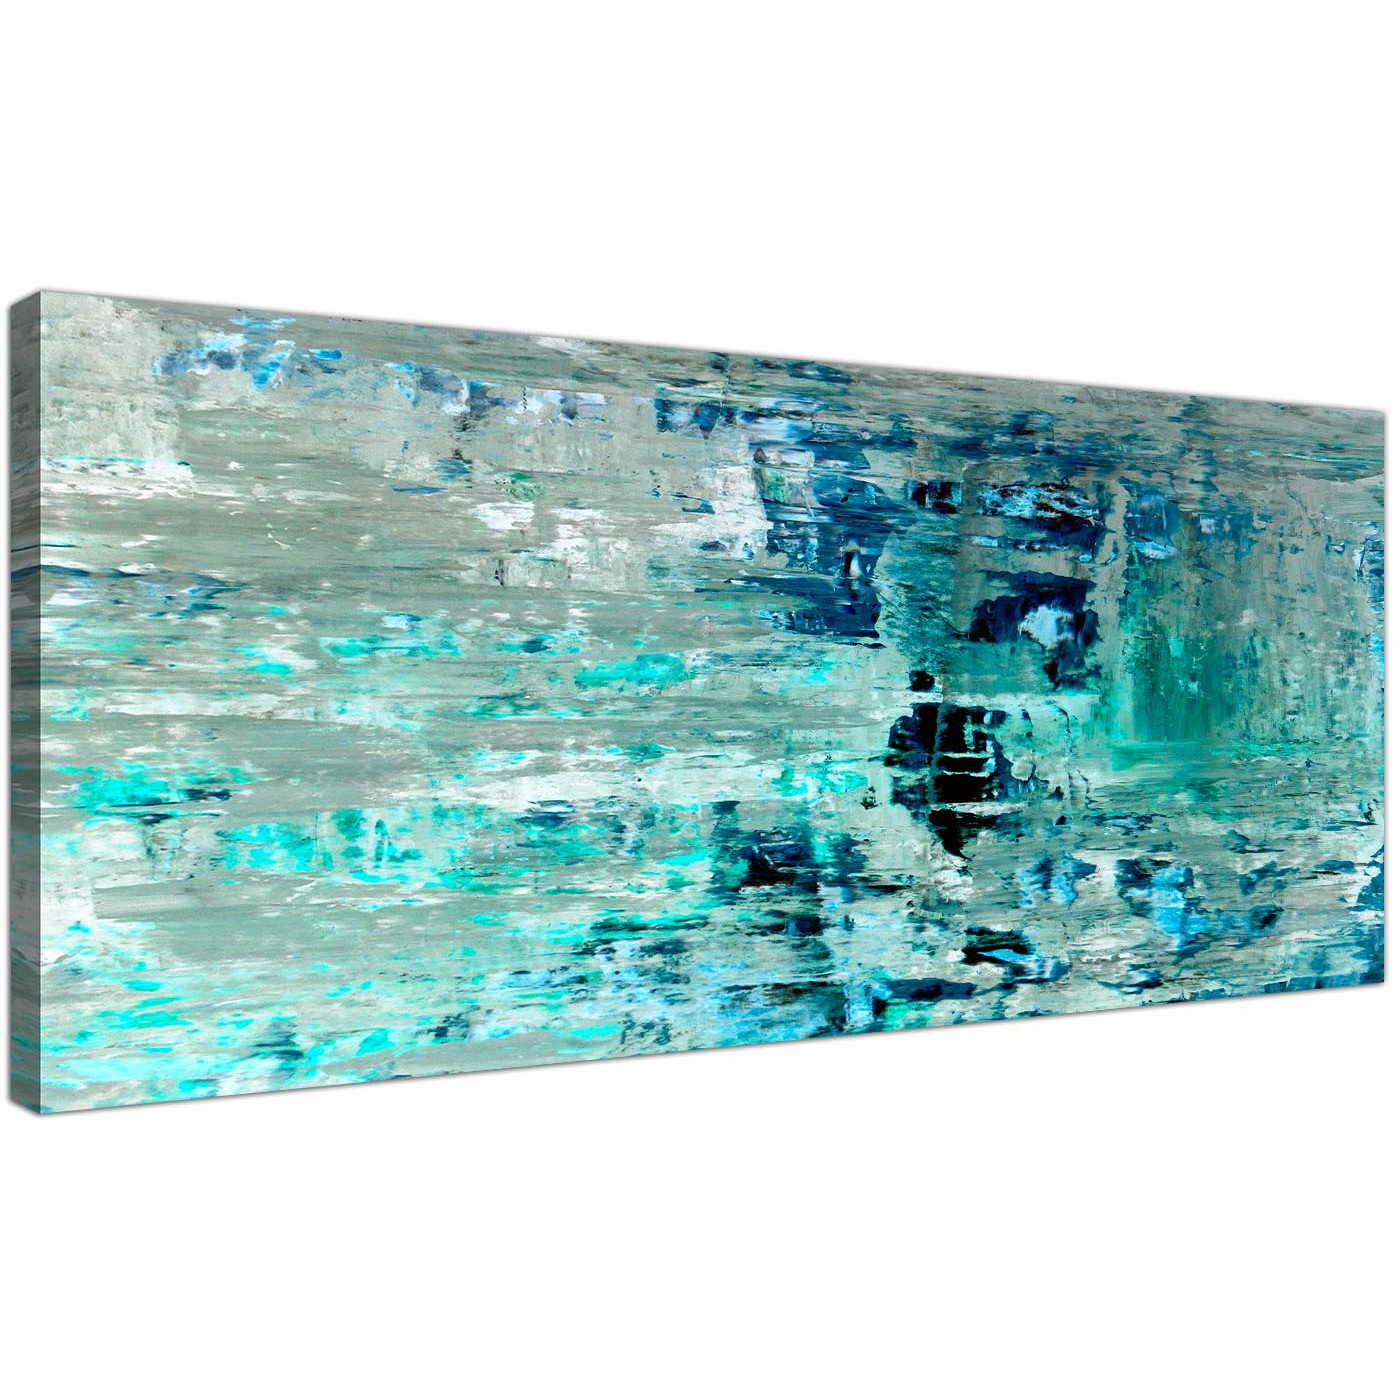 Perfect Oversized Turquoise Teal Abstract Painting Wall Art Print Canvas Modern  120cm Wide 1333 For Your Living Display Gallery Item 1 ...